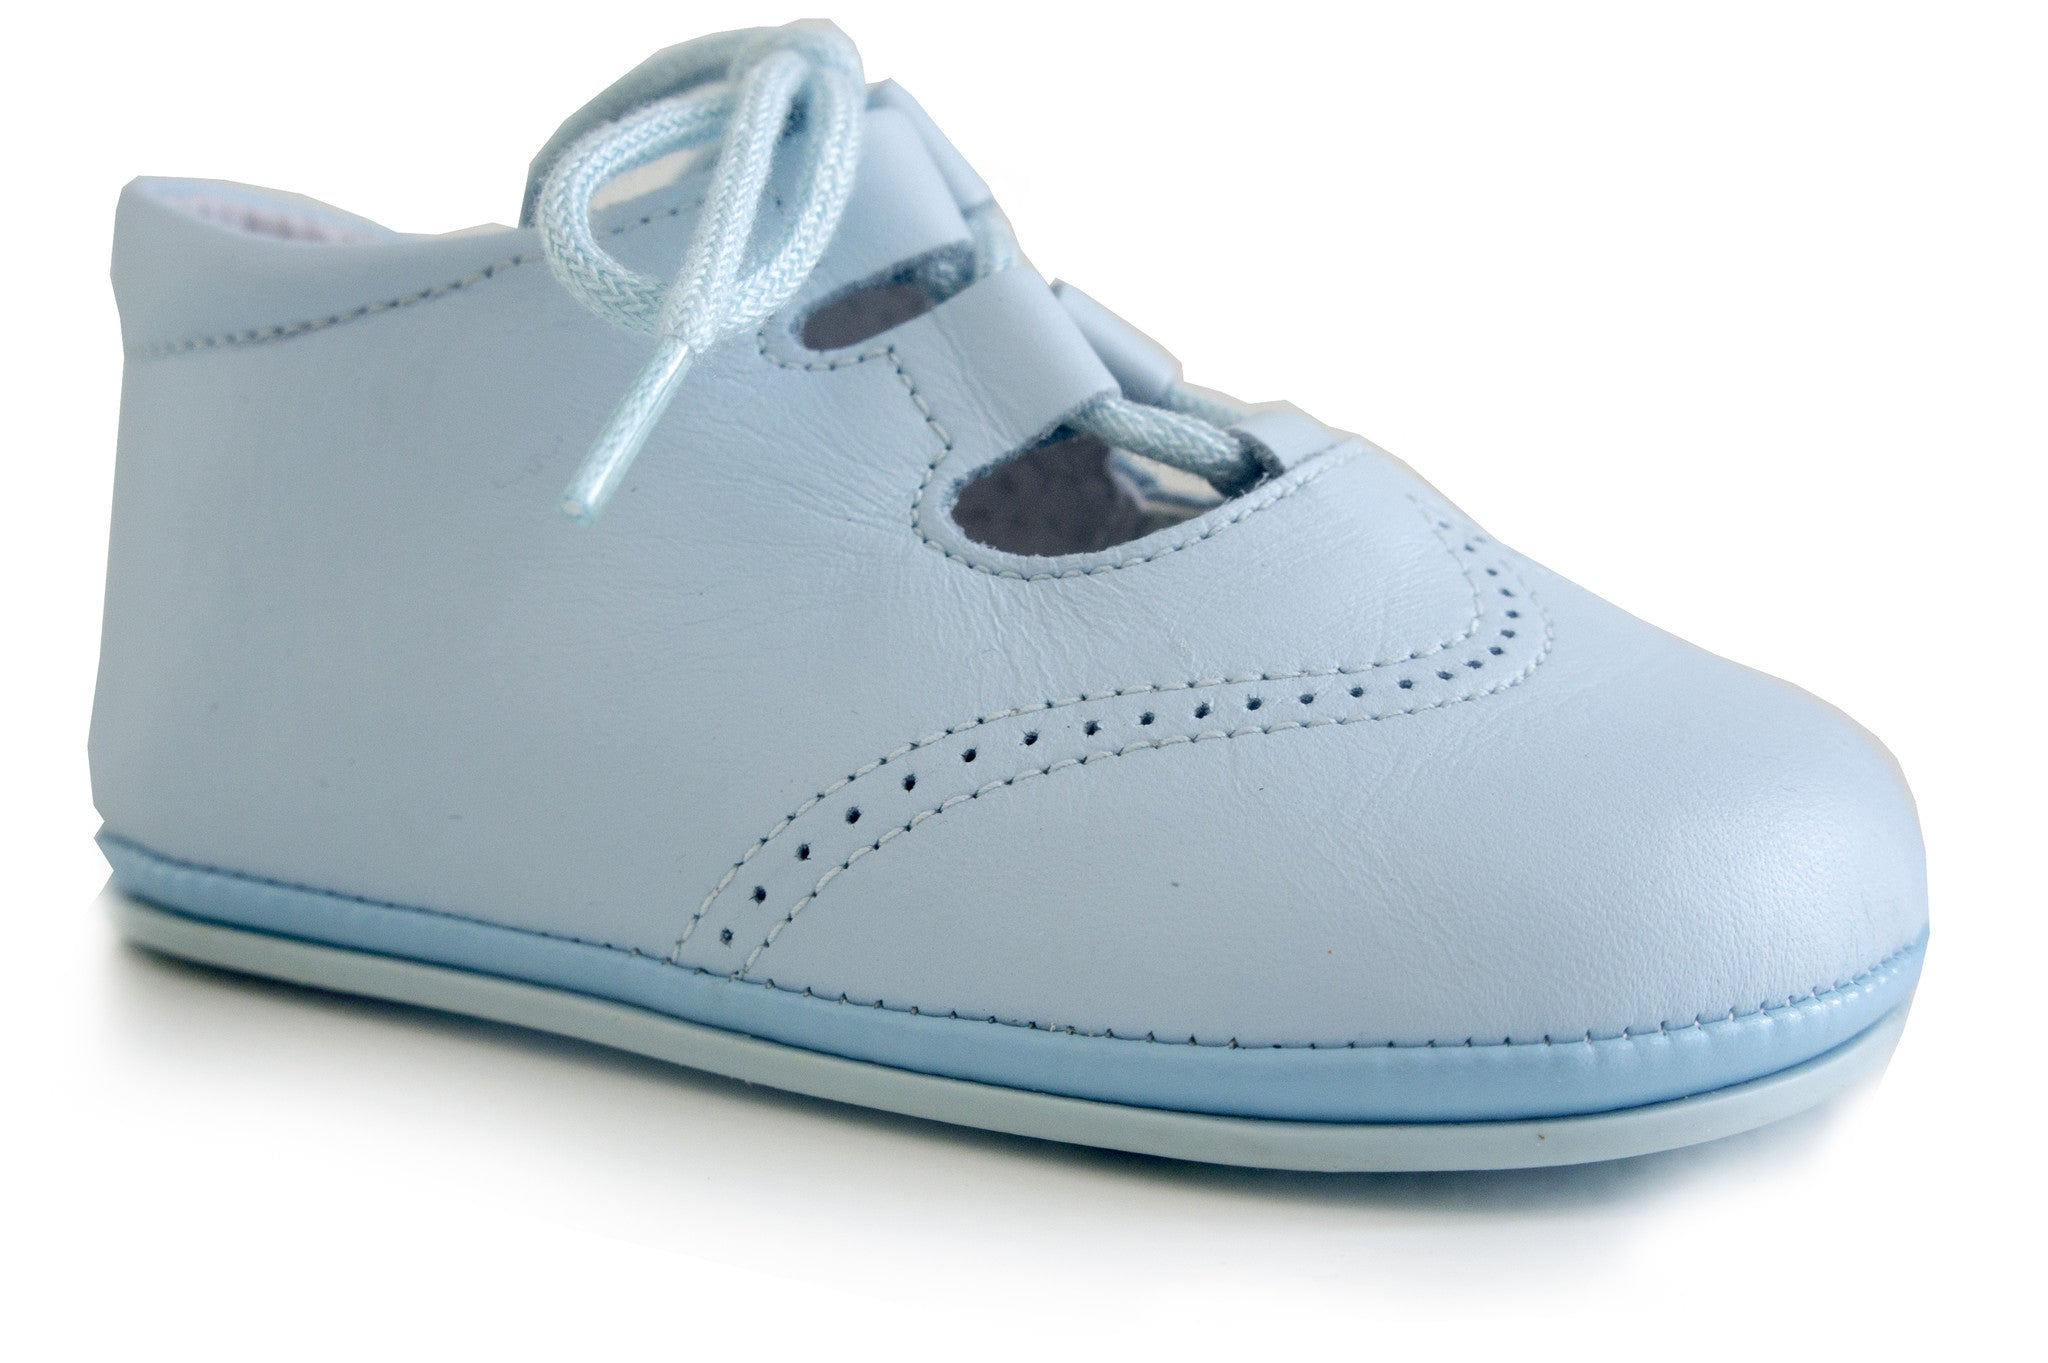 Classic Blue leather Shoes for Baby Boys